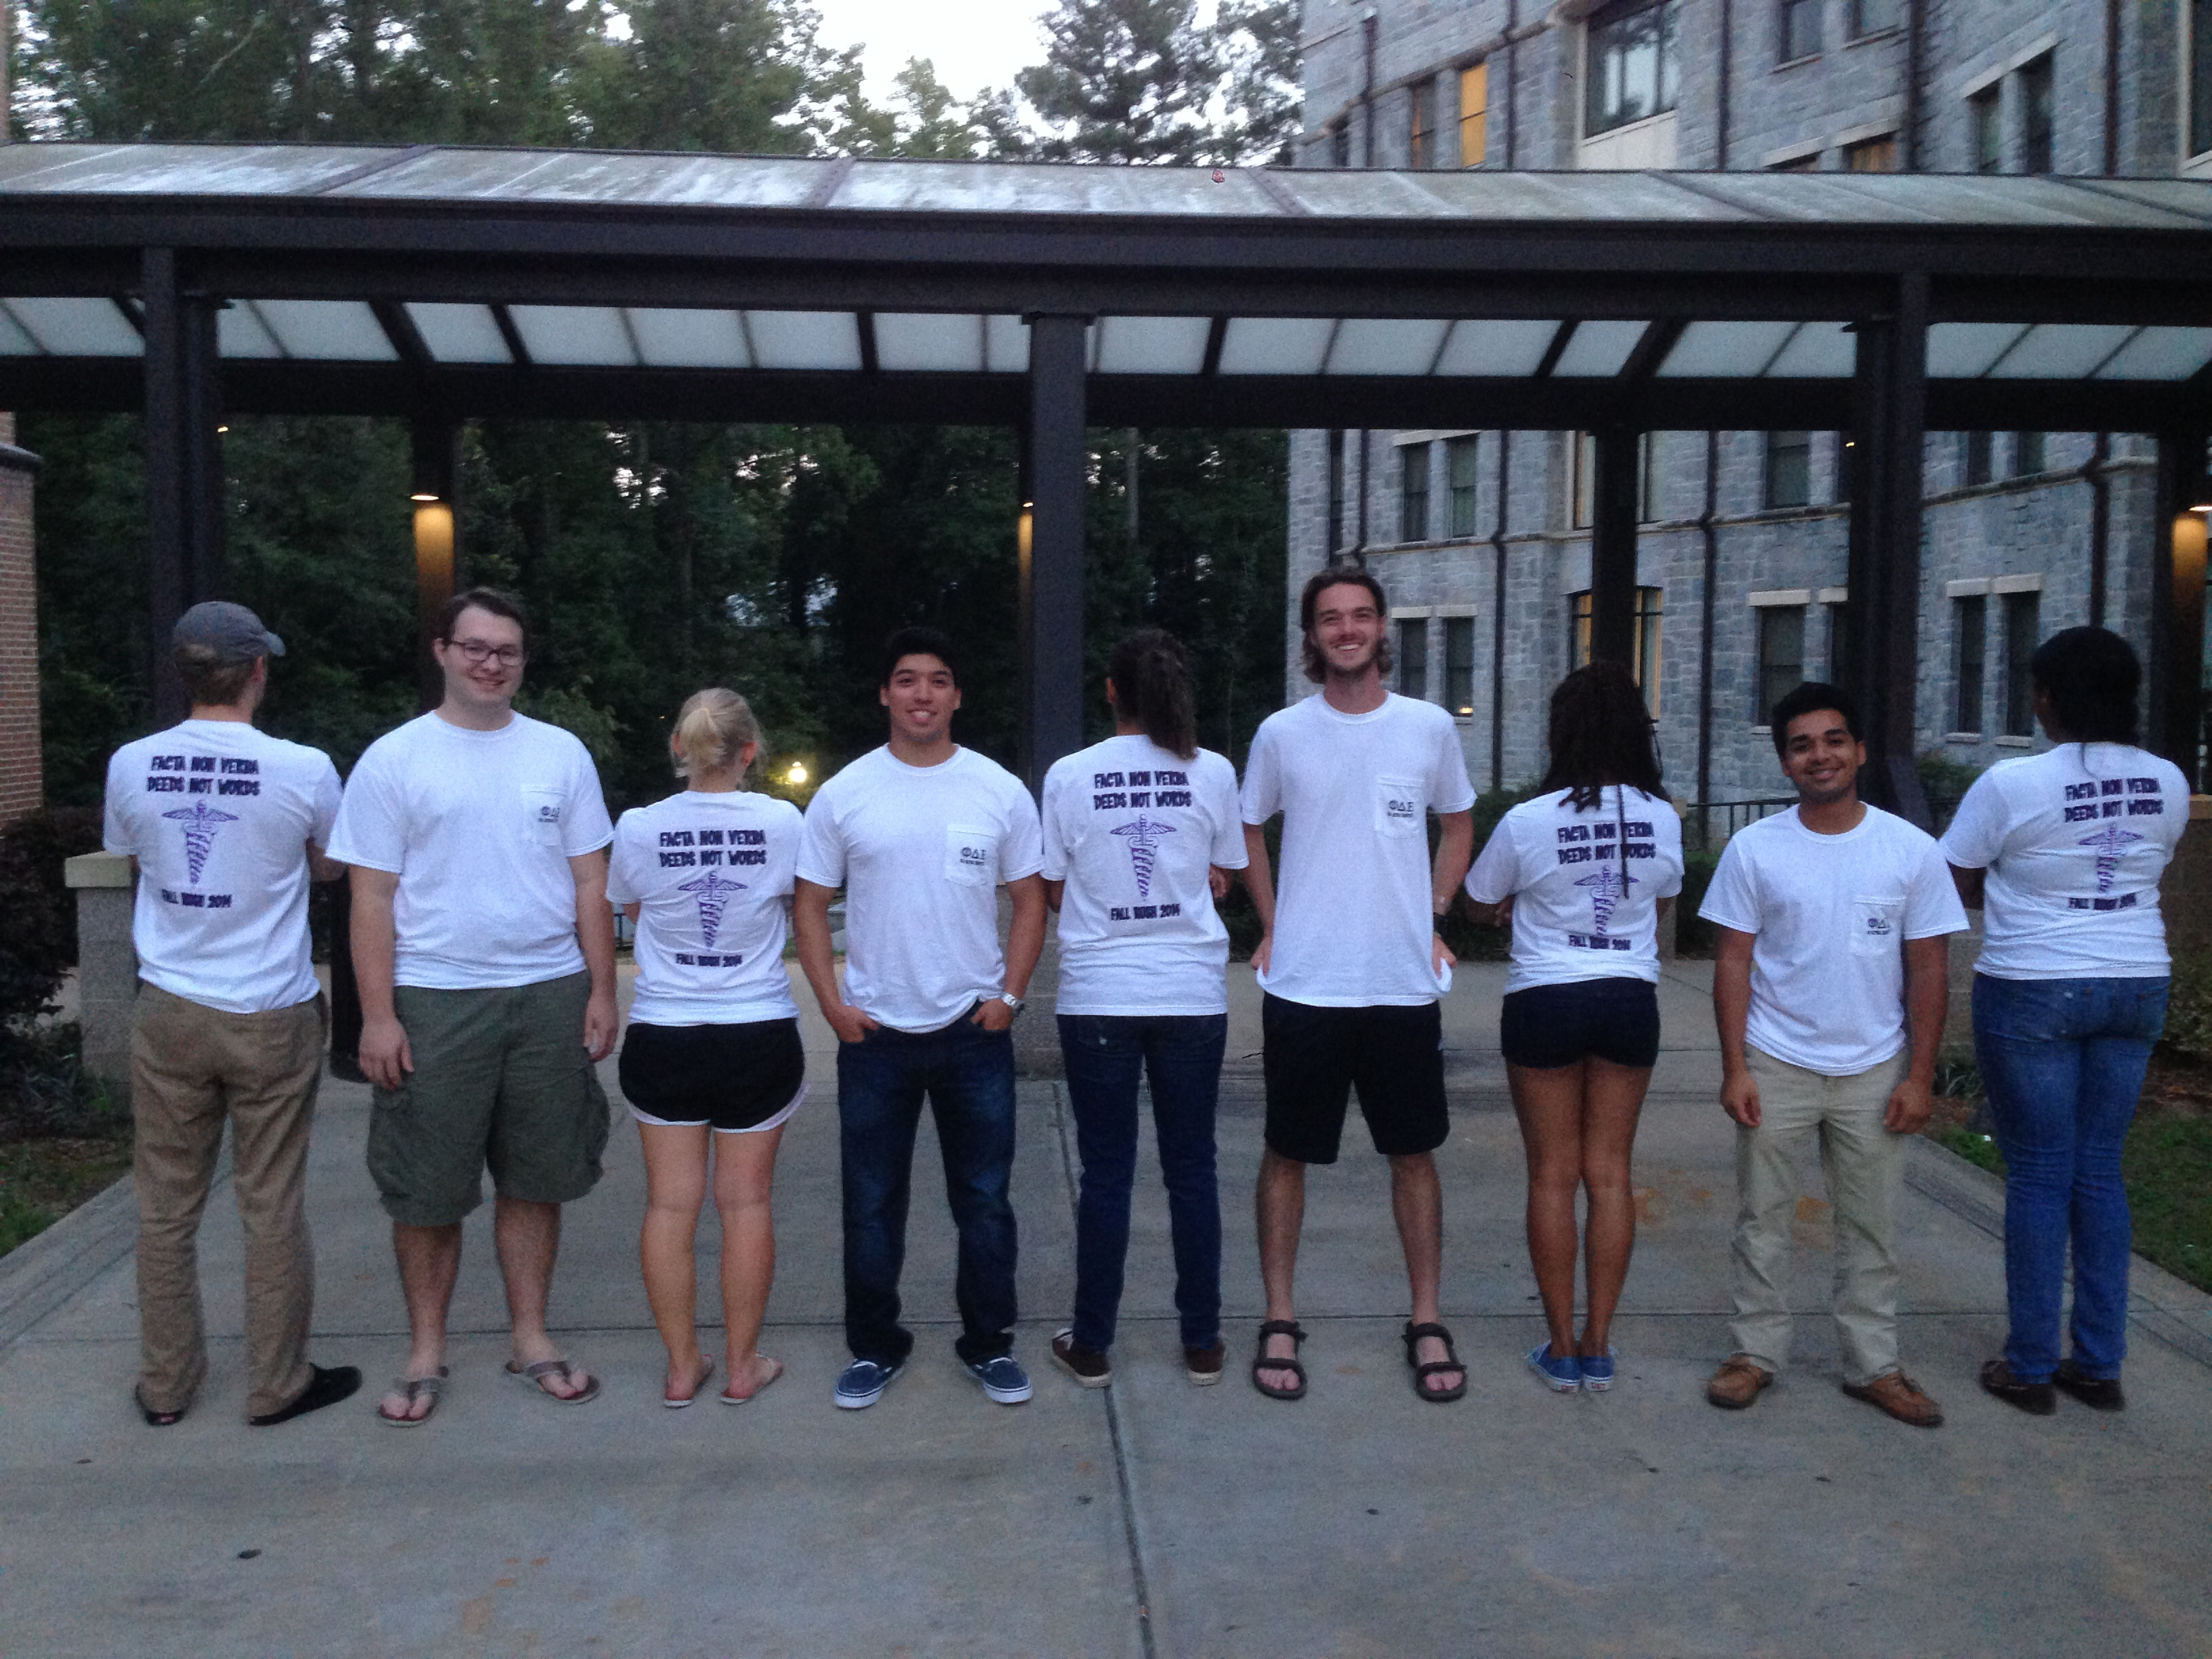 Custom T Shirts For Phi Delta Epsilon Fall Rush 2014